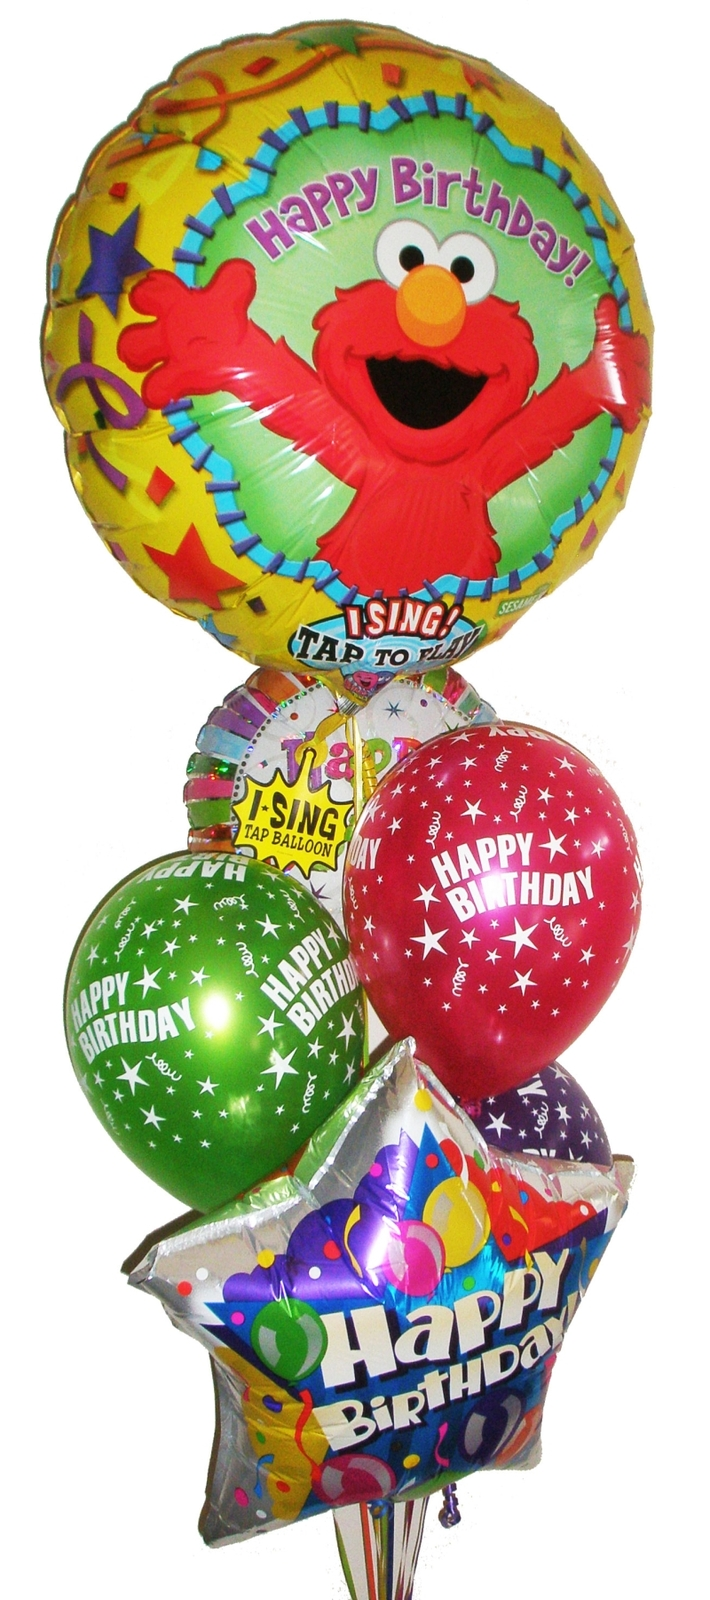 Happy birthday flowers and balloons pin by breda on holidays and happy birthday flowers and balloons download izmirmasajfo